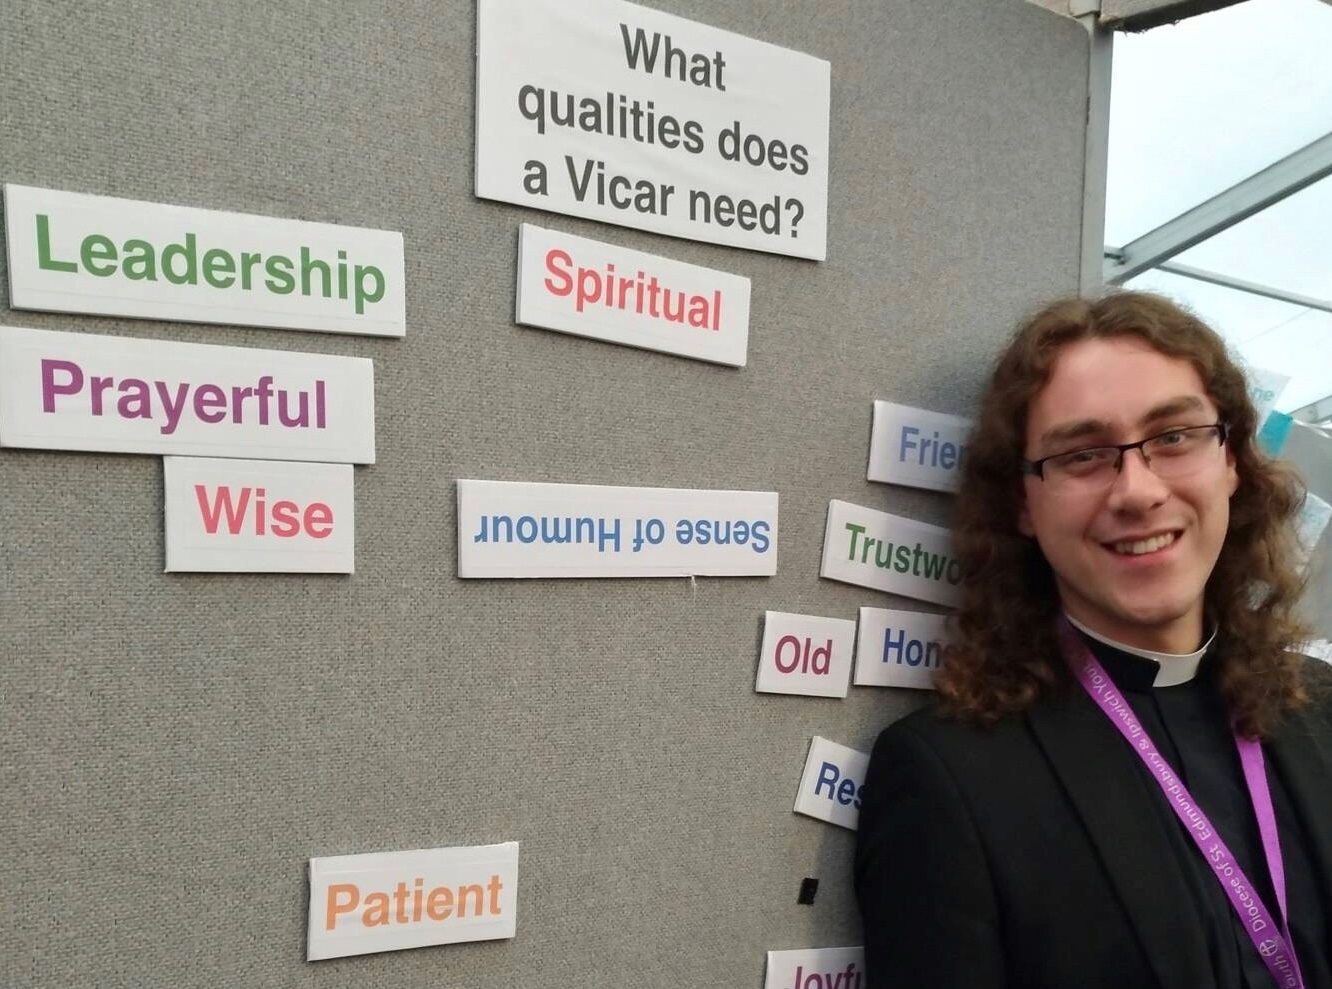 Young vicar standing by a display of qualities needed: Leadership, Spiritual, Prayerful, Wise, Patient, Sense of humour